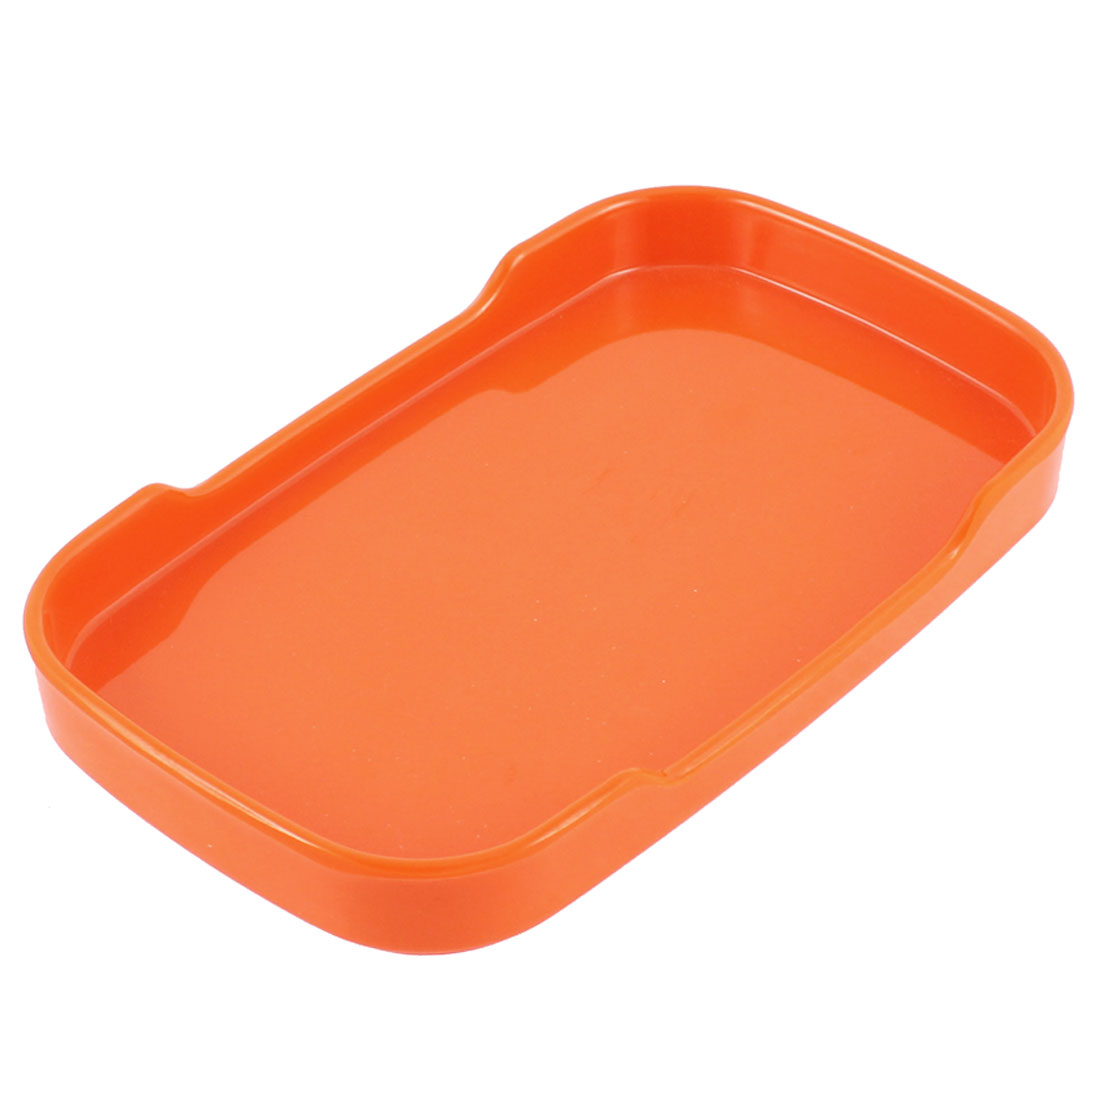 Plastic Rectangle Shaped Dinner Dessert Snack Plate Orange 19cm Long